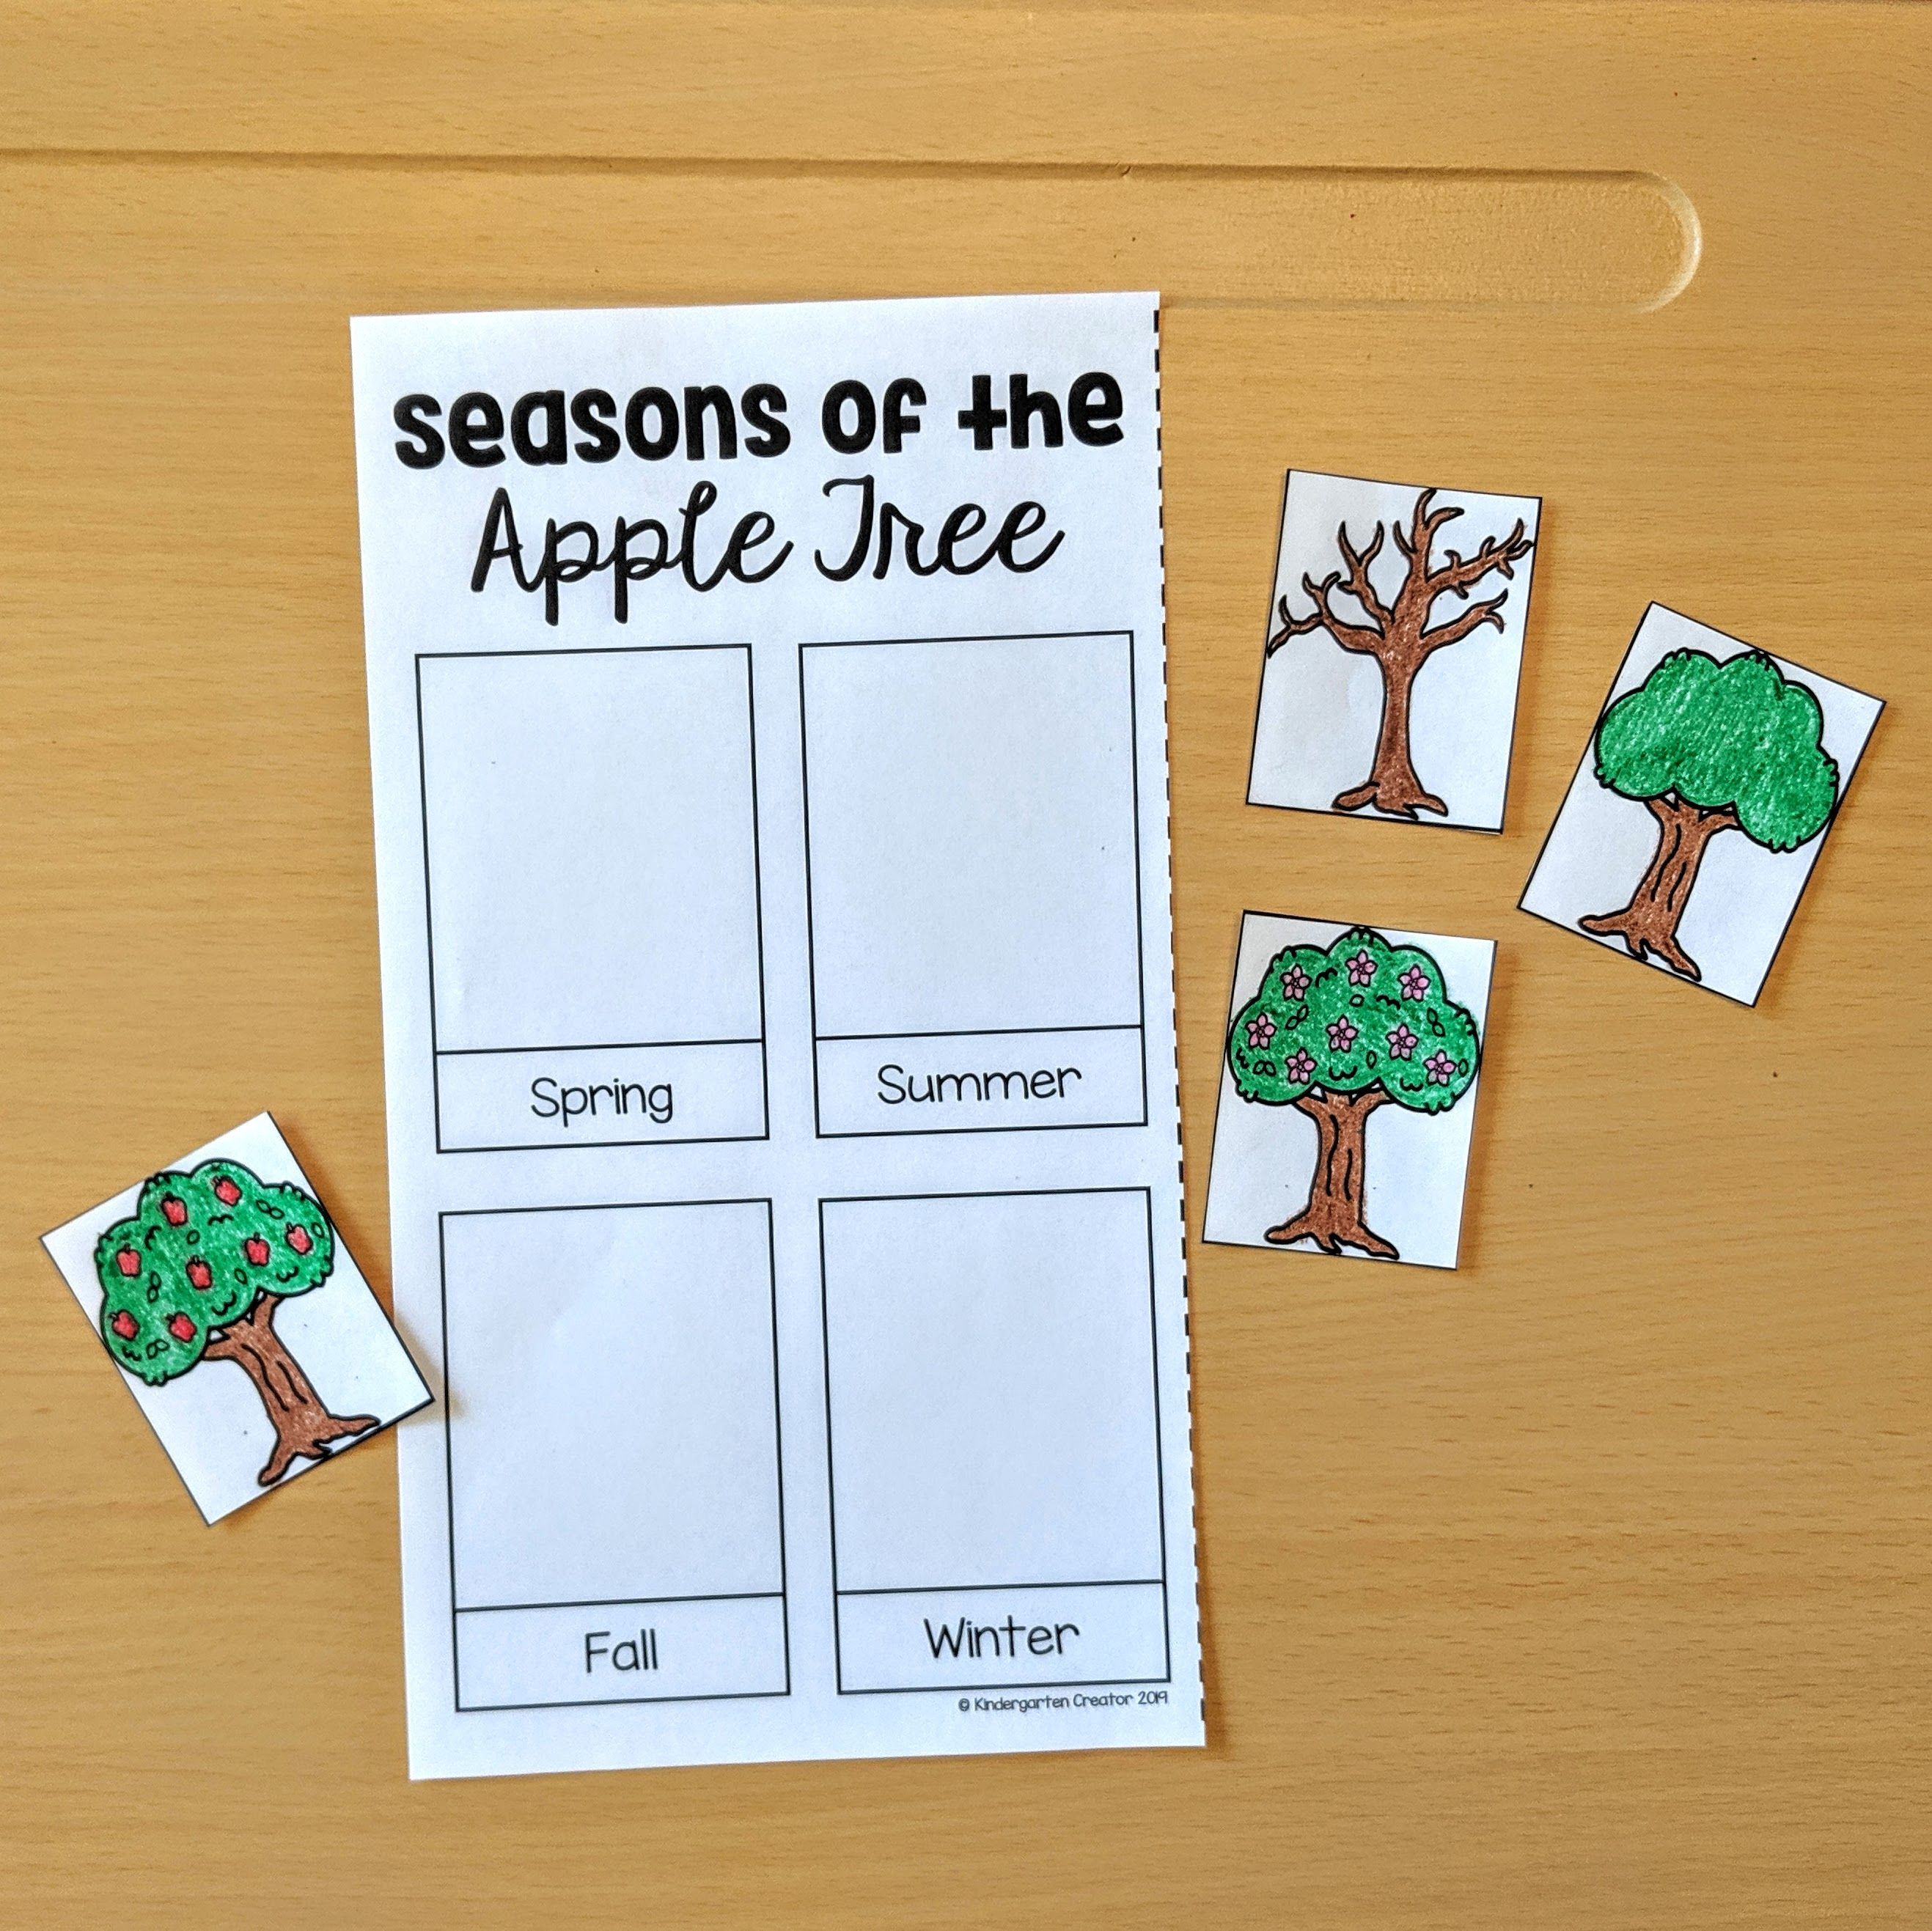 Seasons Of An Apple Tree With Images